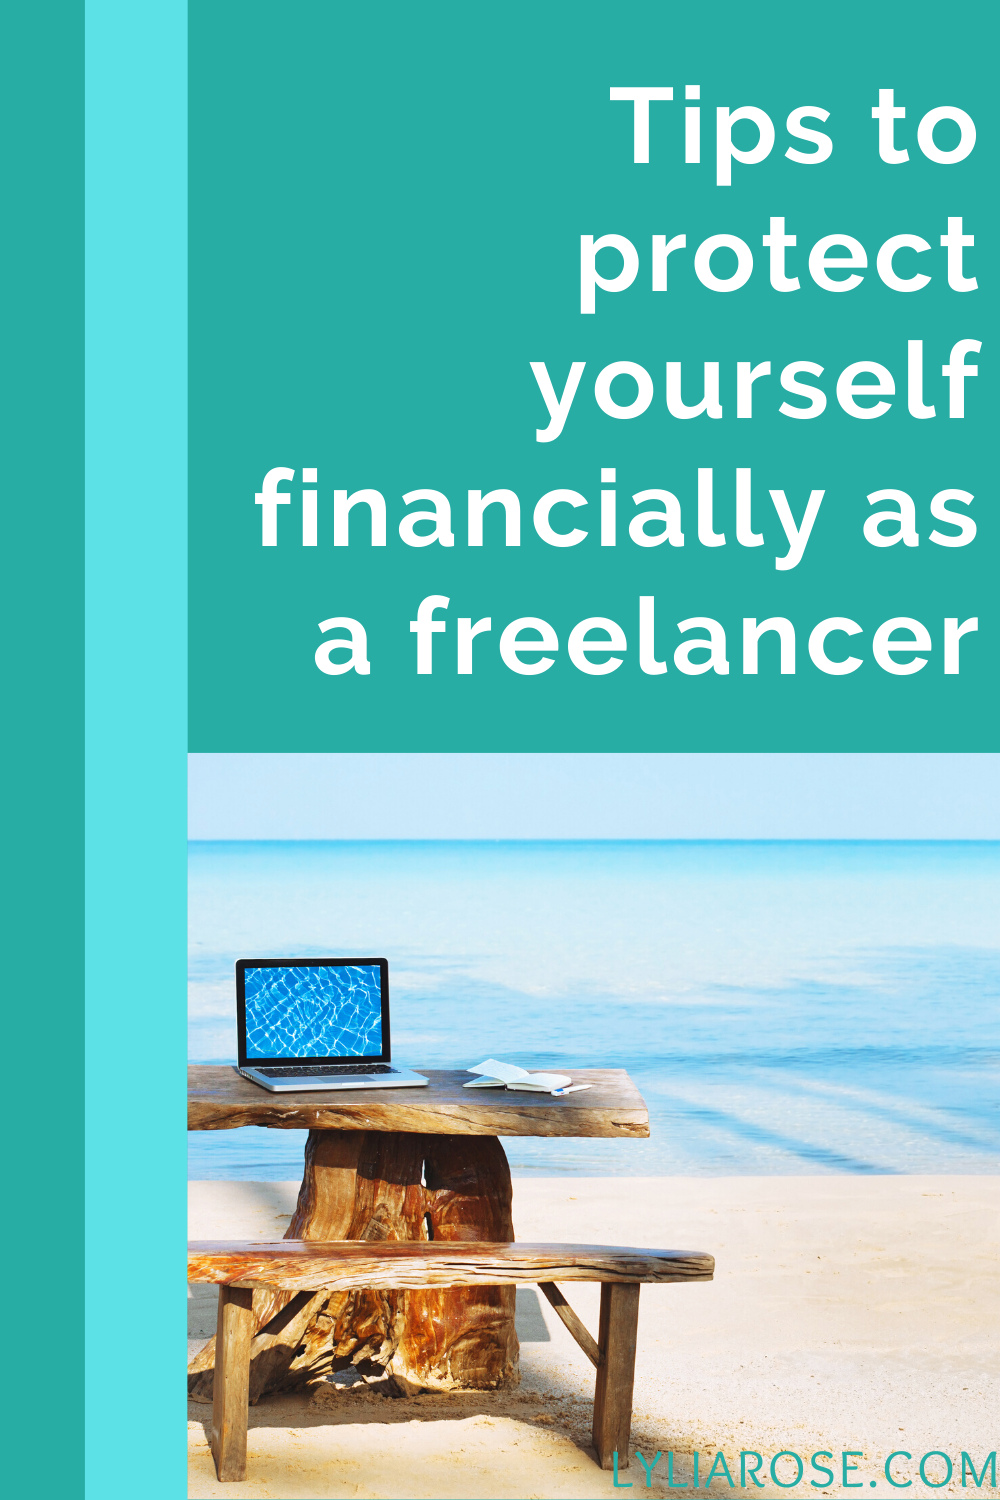 Tips to protect yourself financially as a freelancer (1)